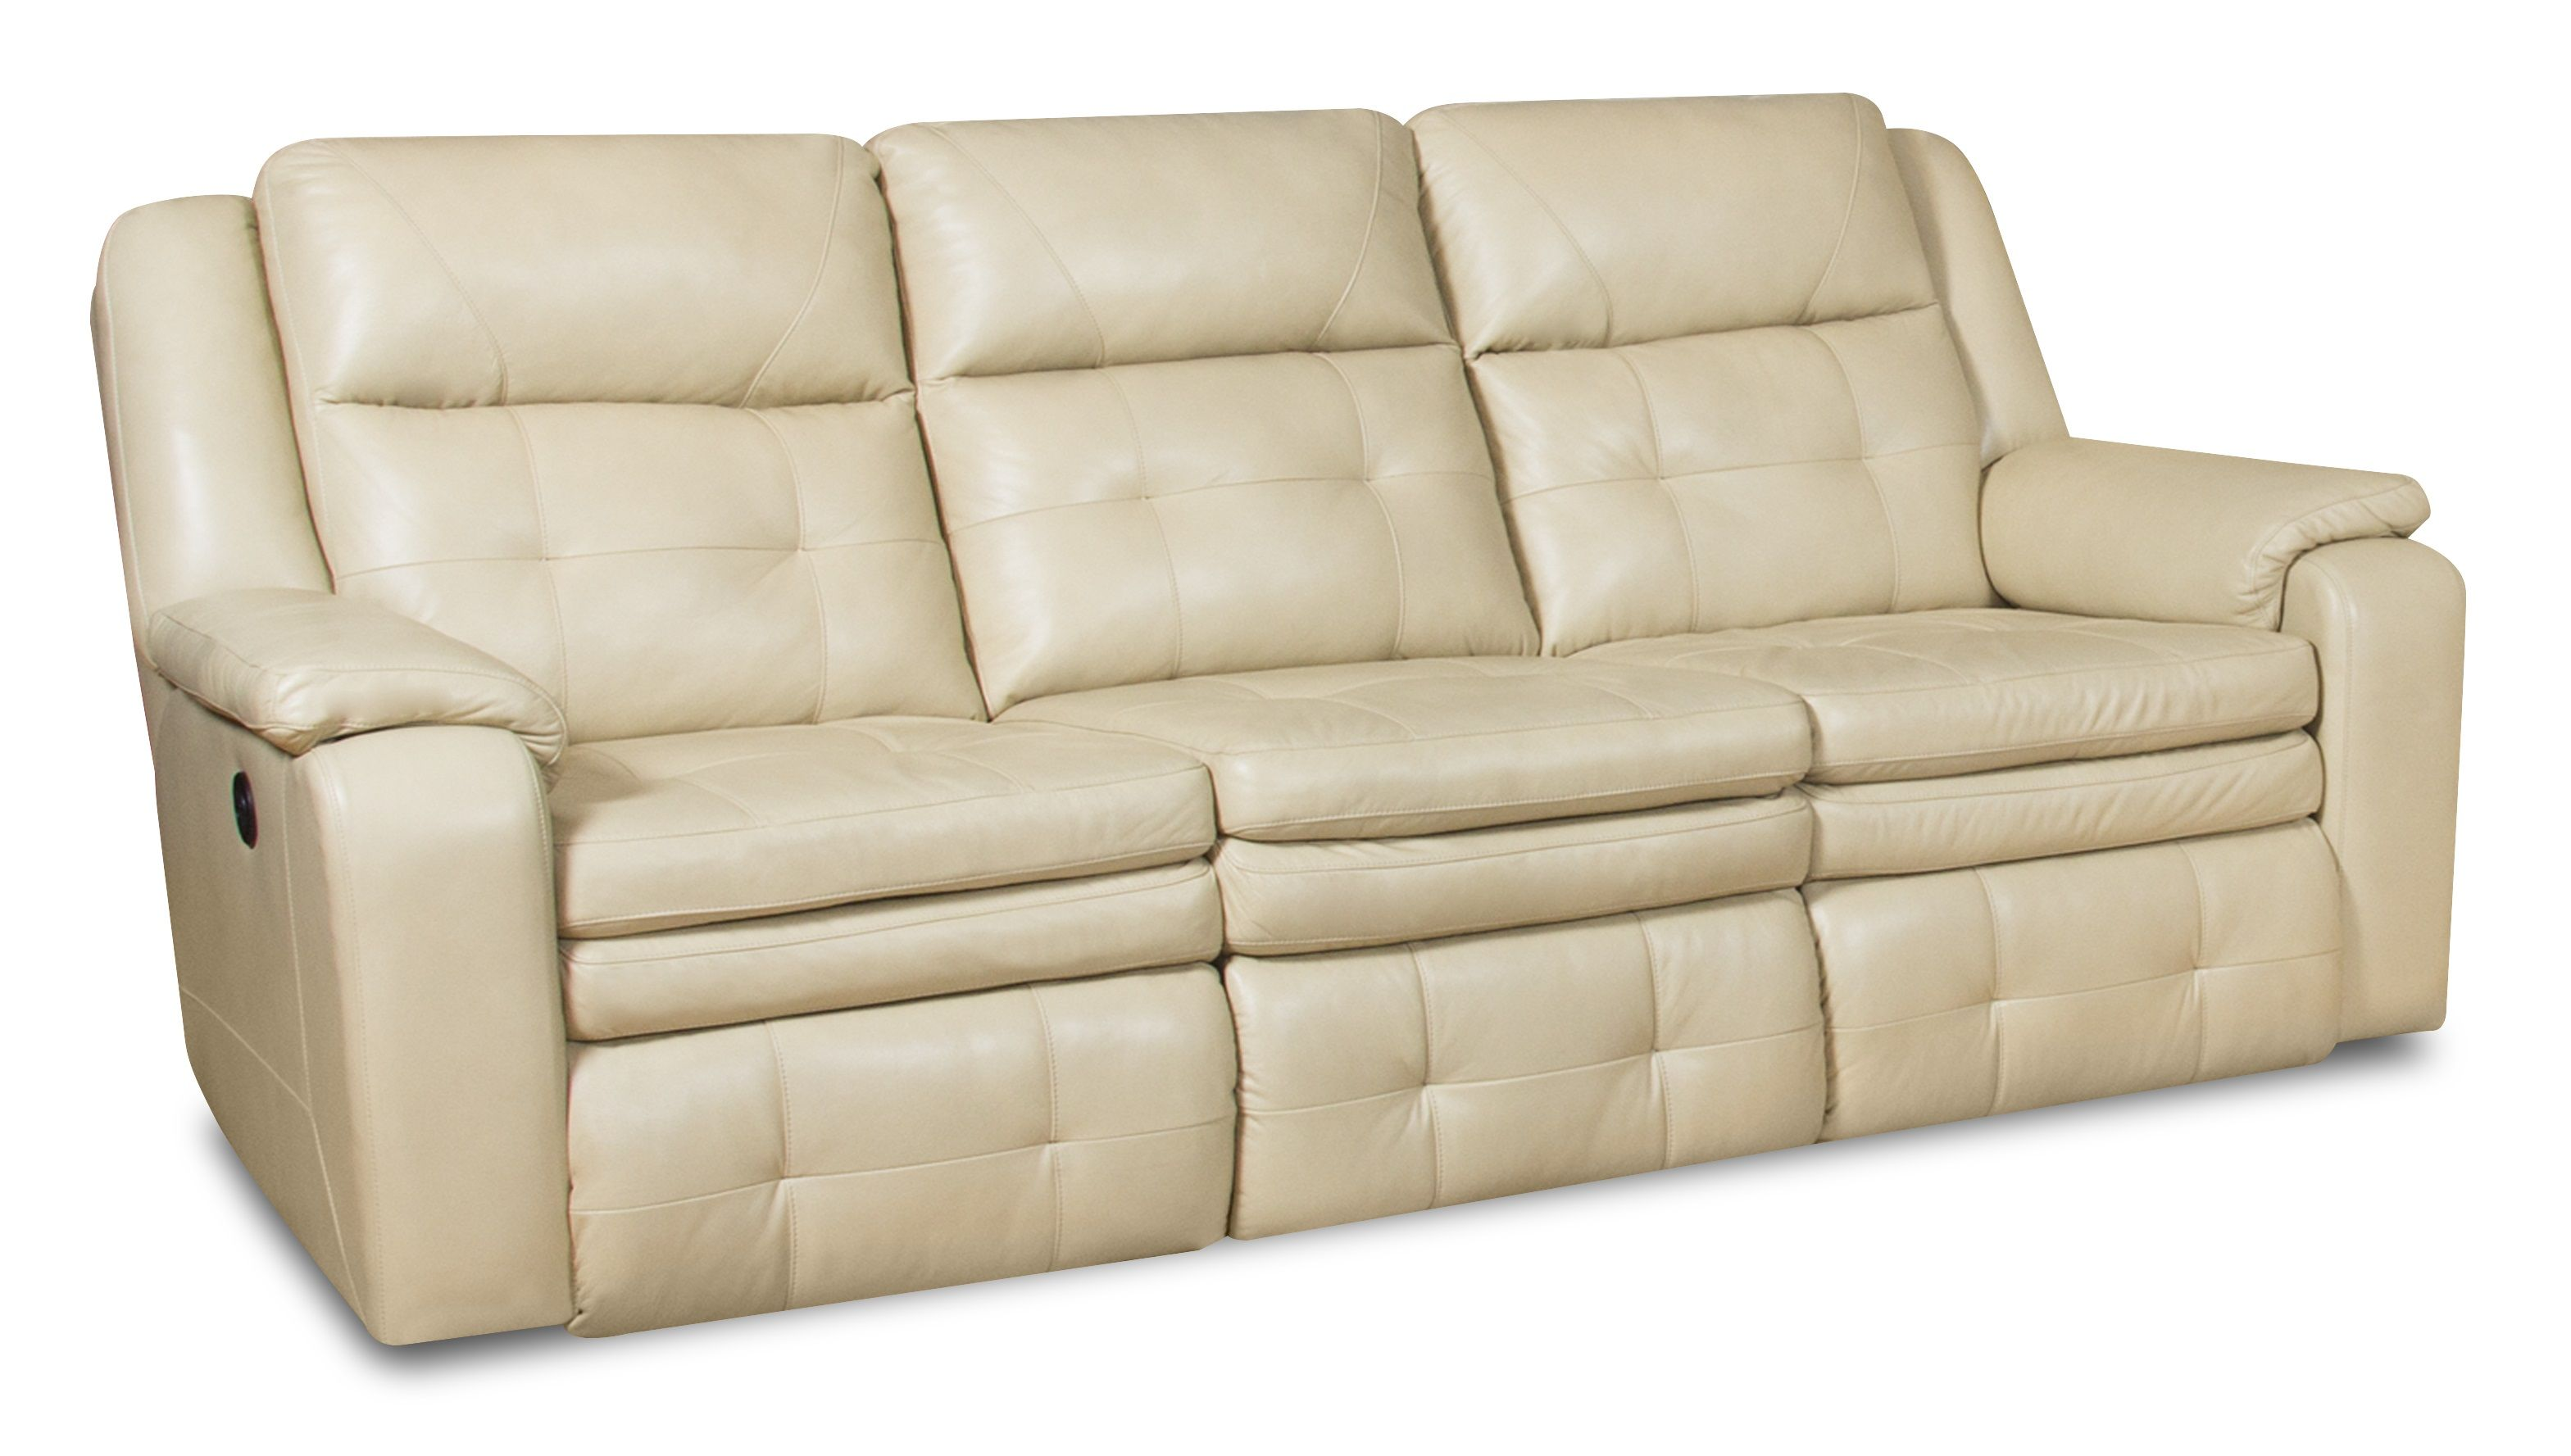 Inspire Reclining Sofa 850 31 Sofas From Southern Motion At